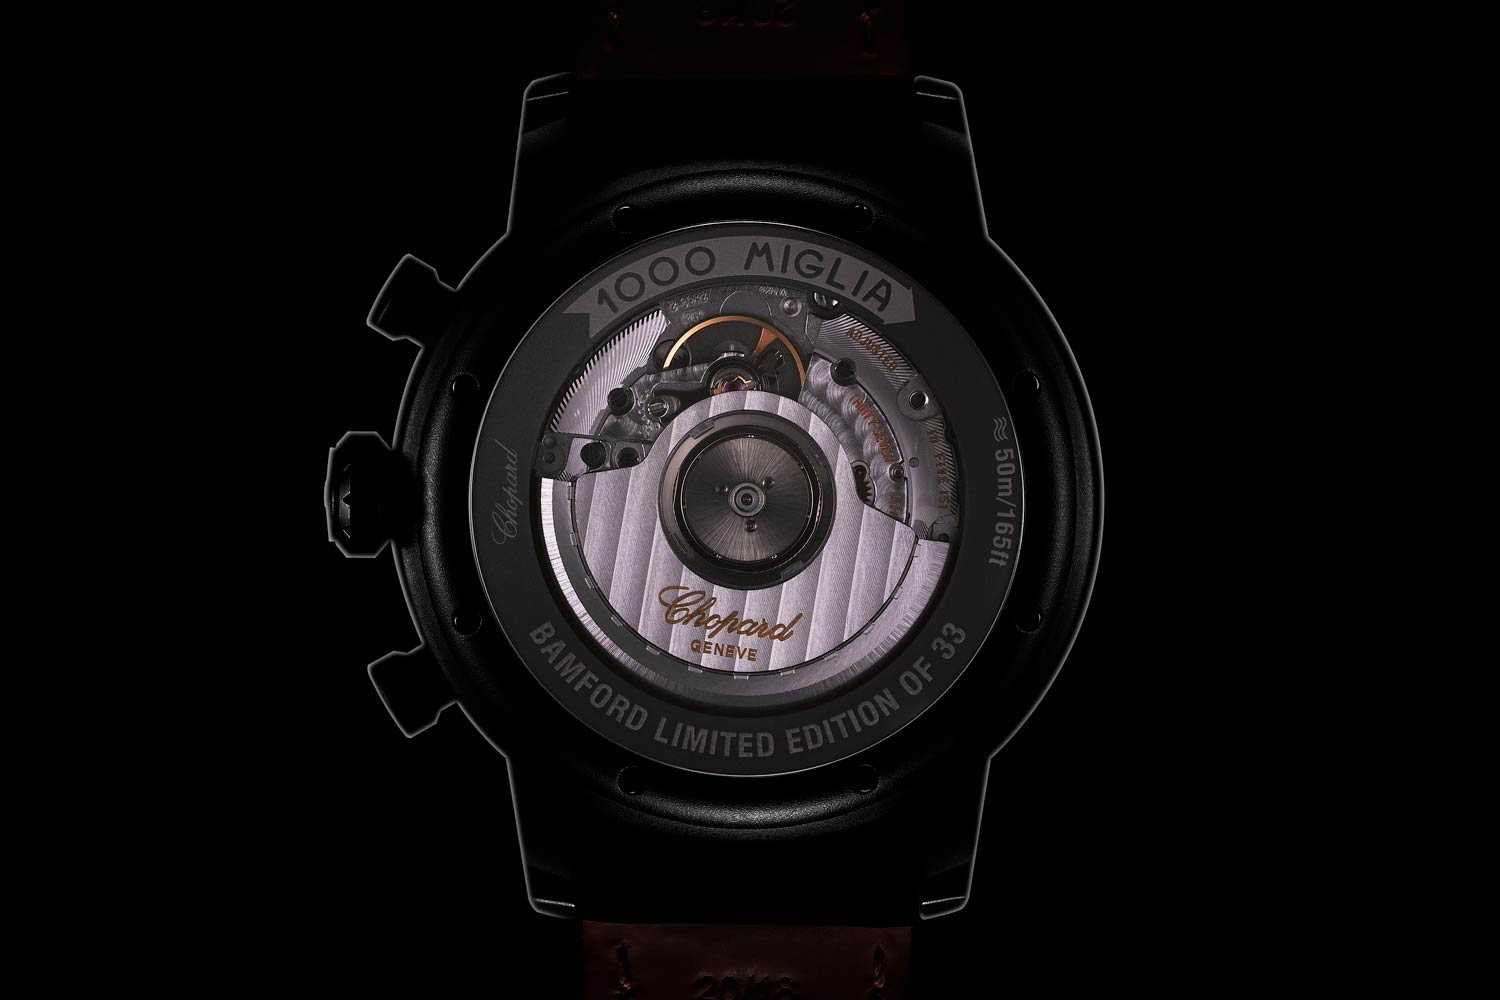 Automatic COSC-rated chronograph with 42-hour power reserve.